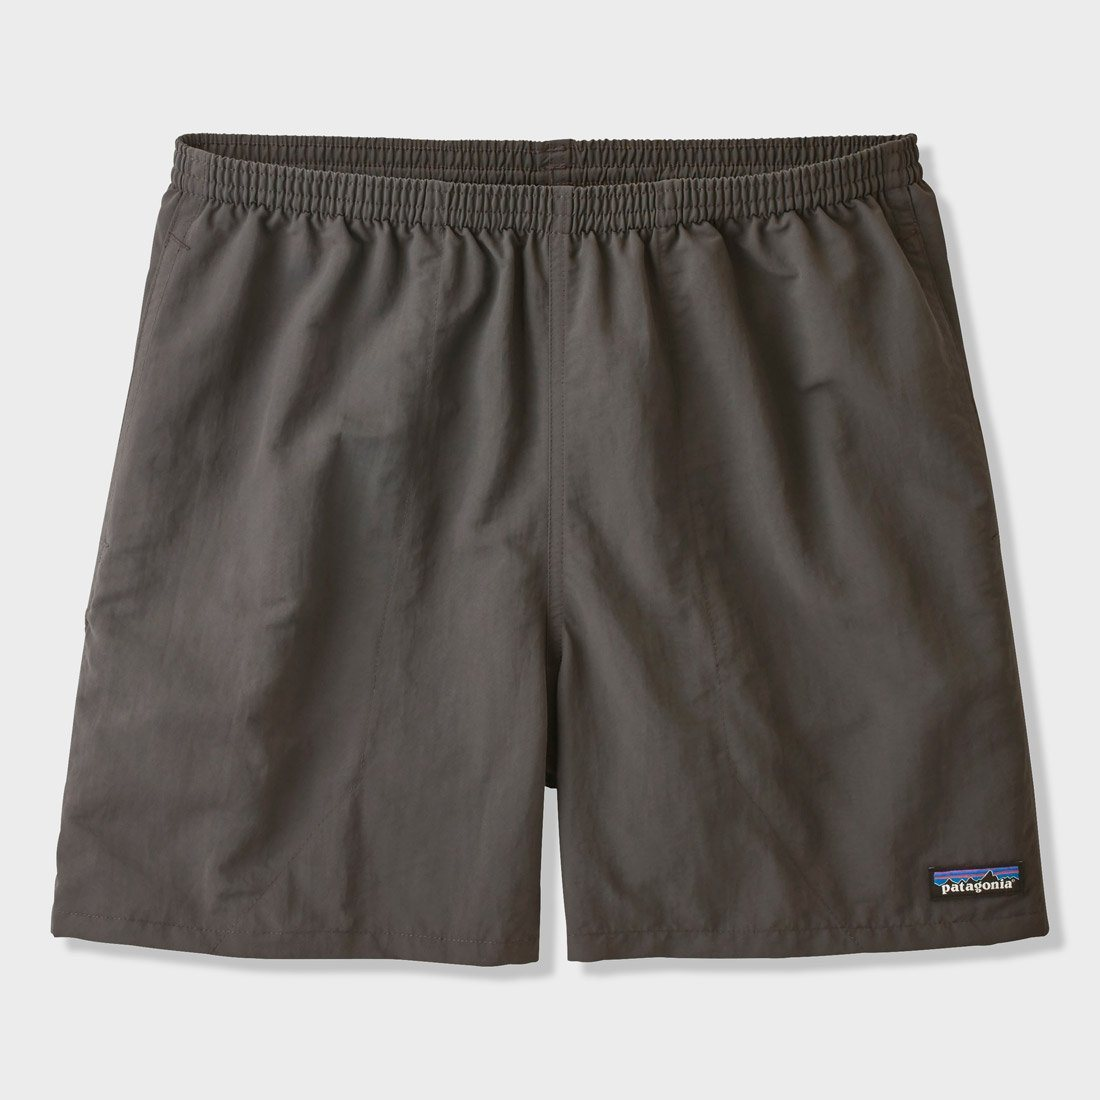 Patagonia Baggies Shorts 5 Inch Forge Grey